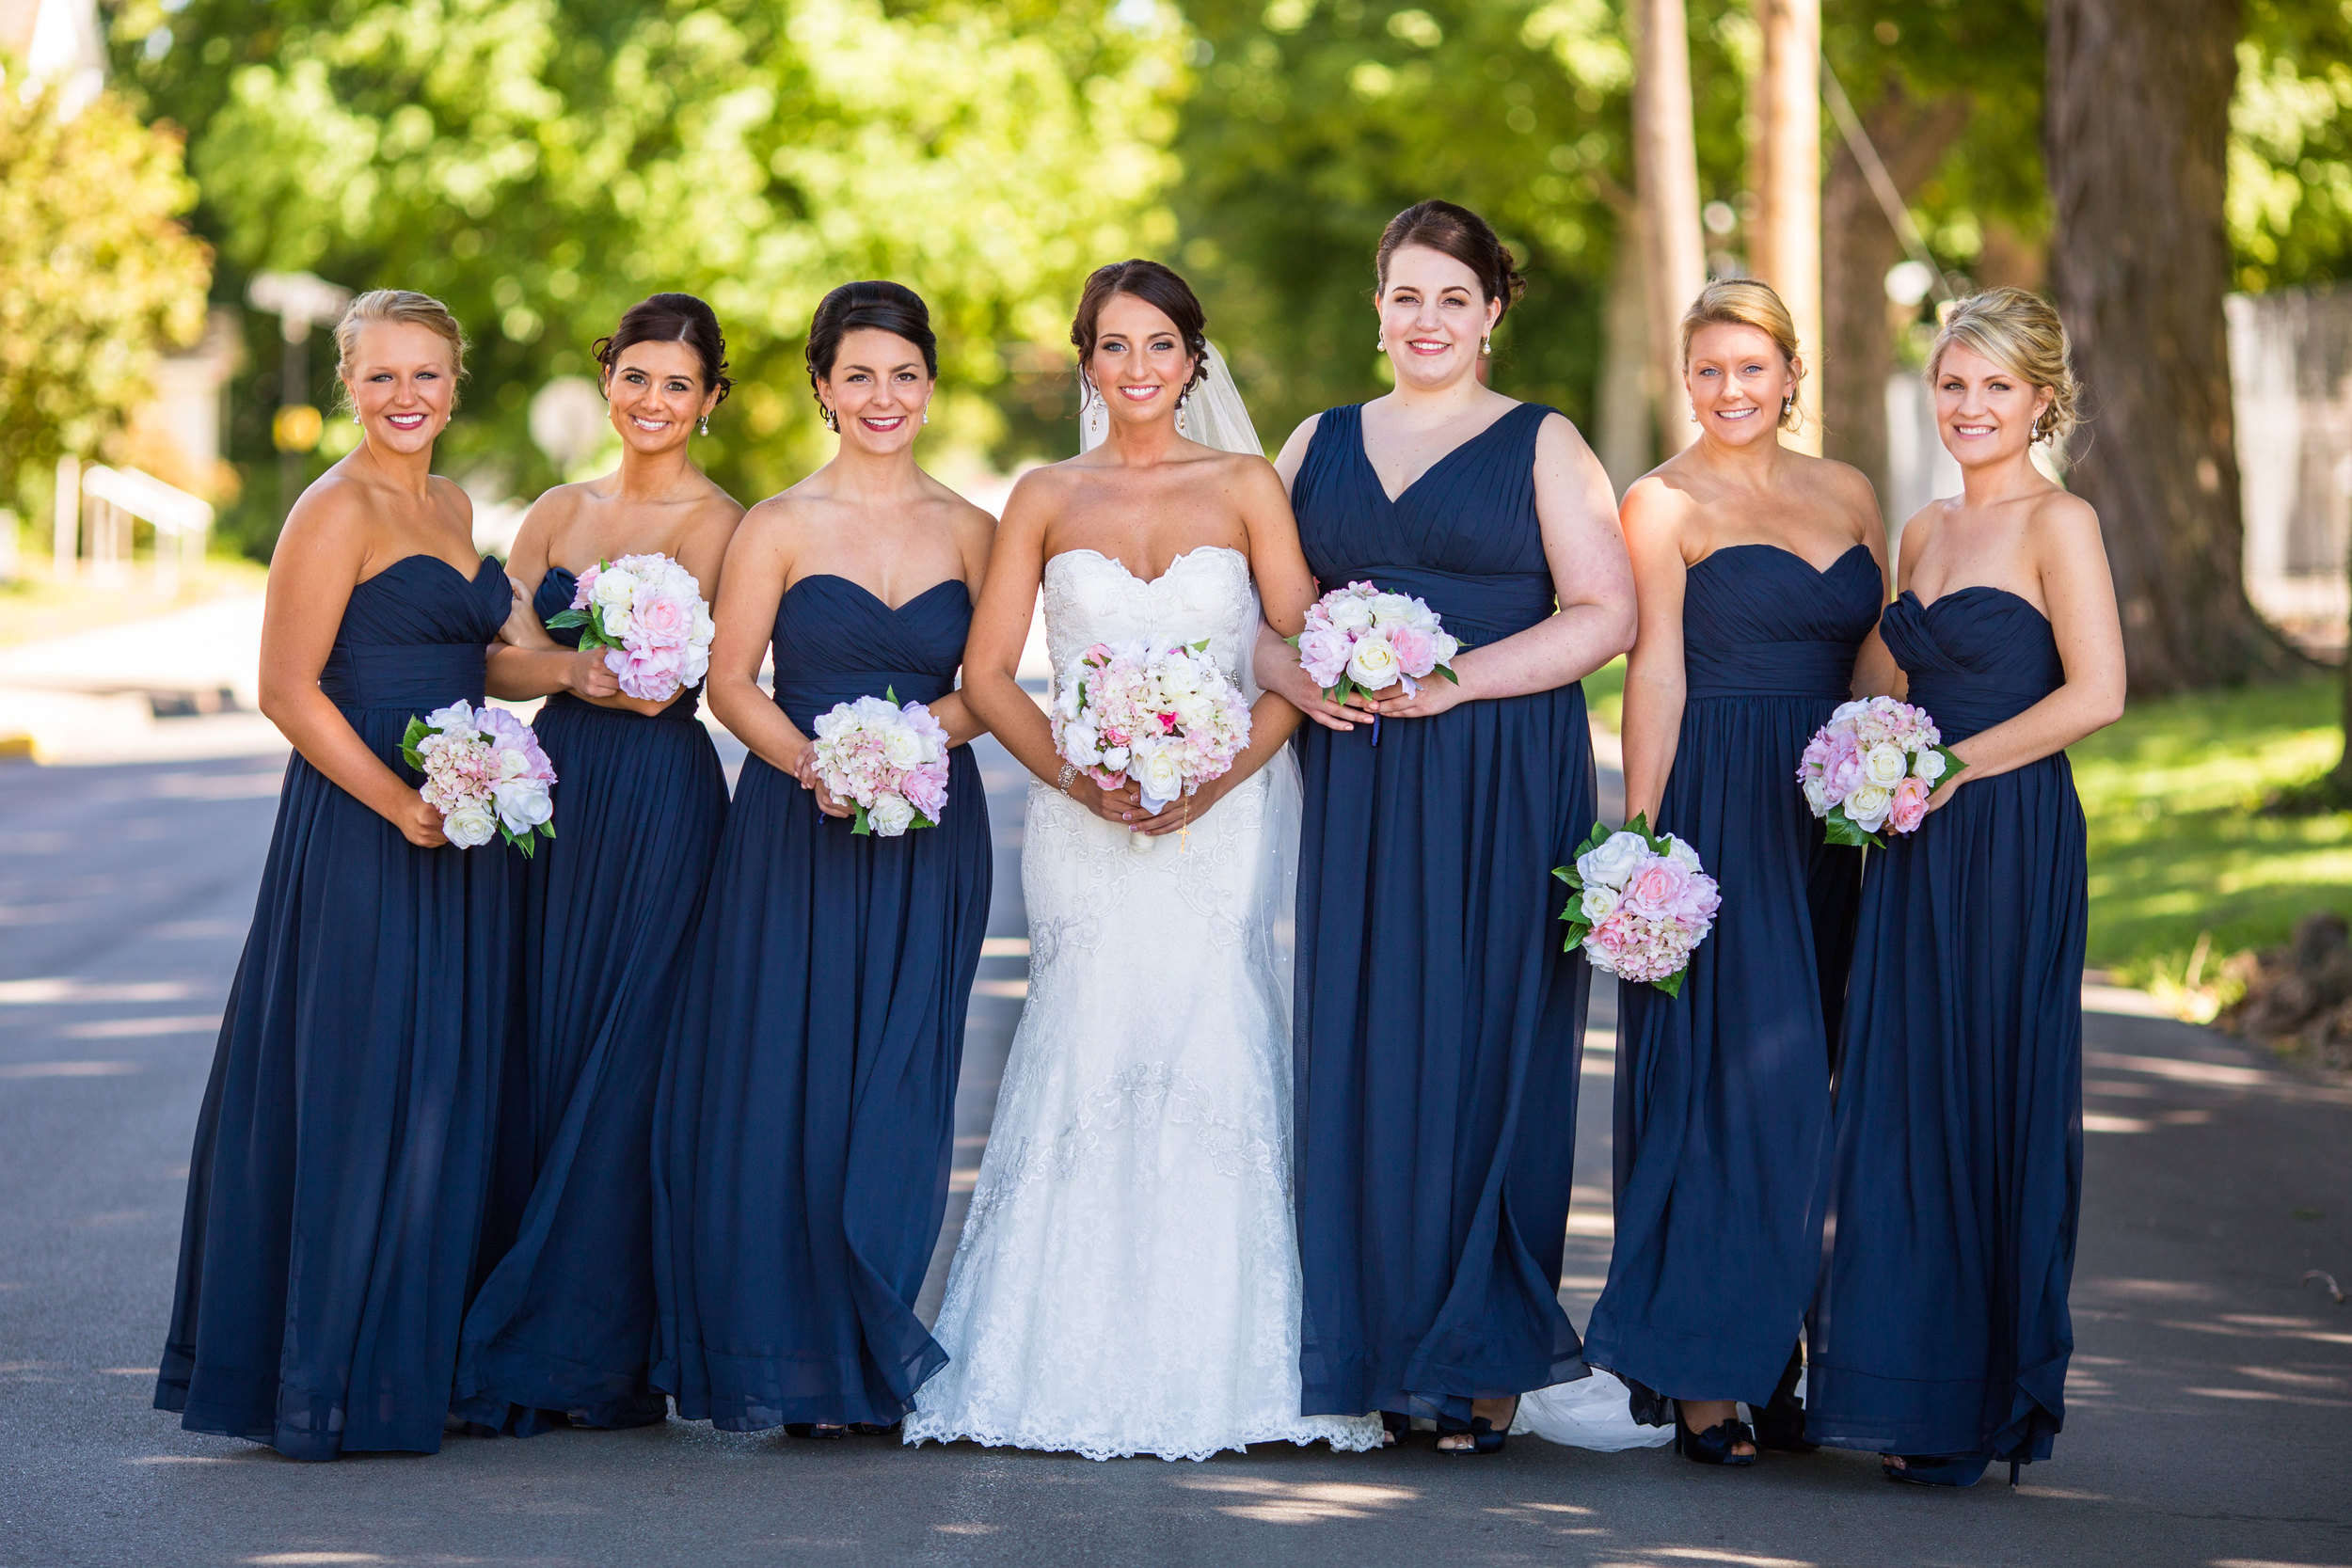 2014-09-13-Schelhorn-Wedding-(201).jpg